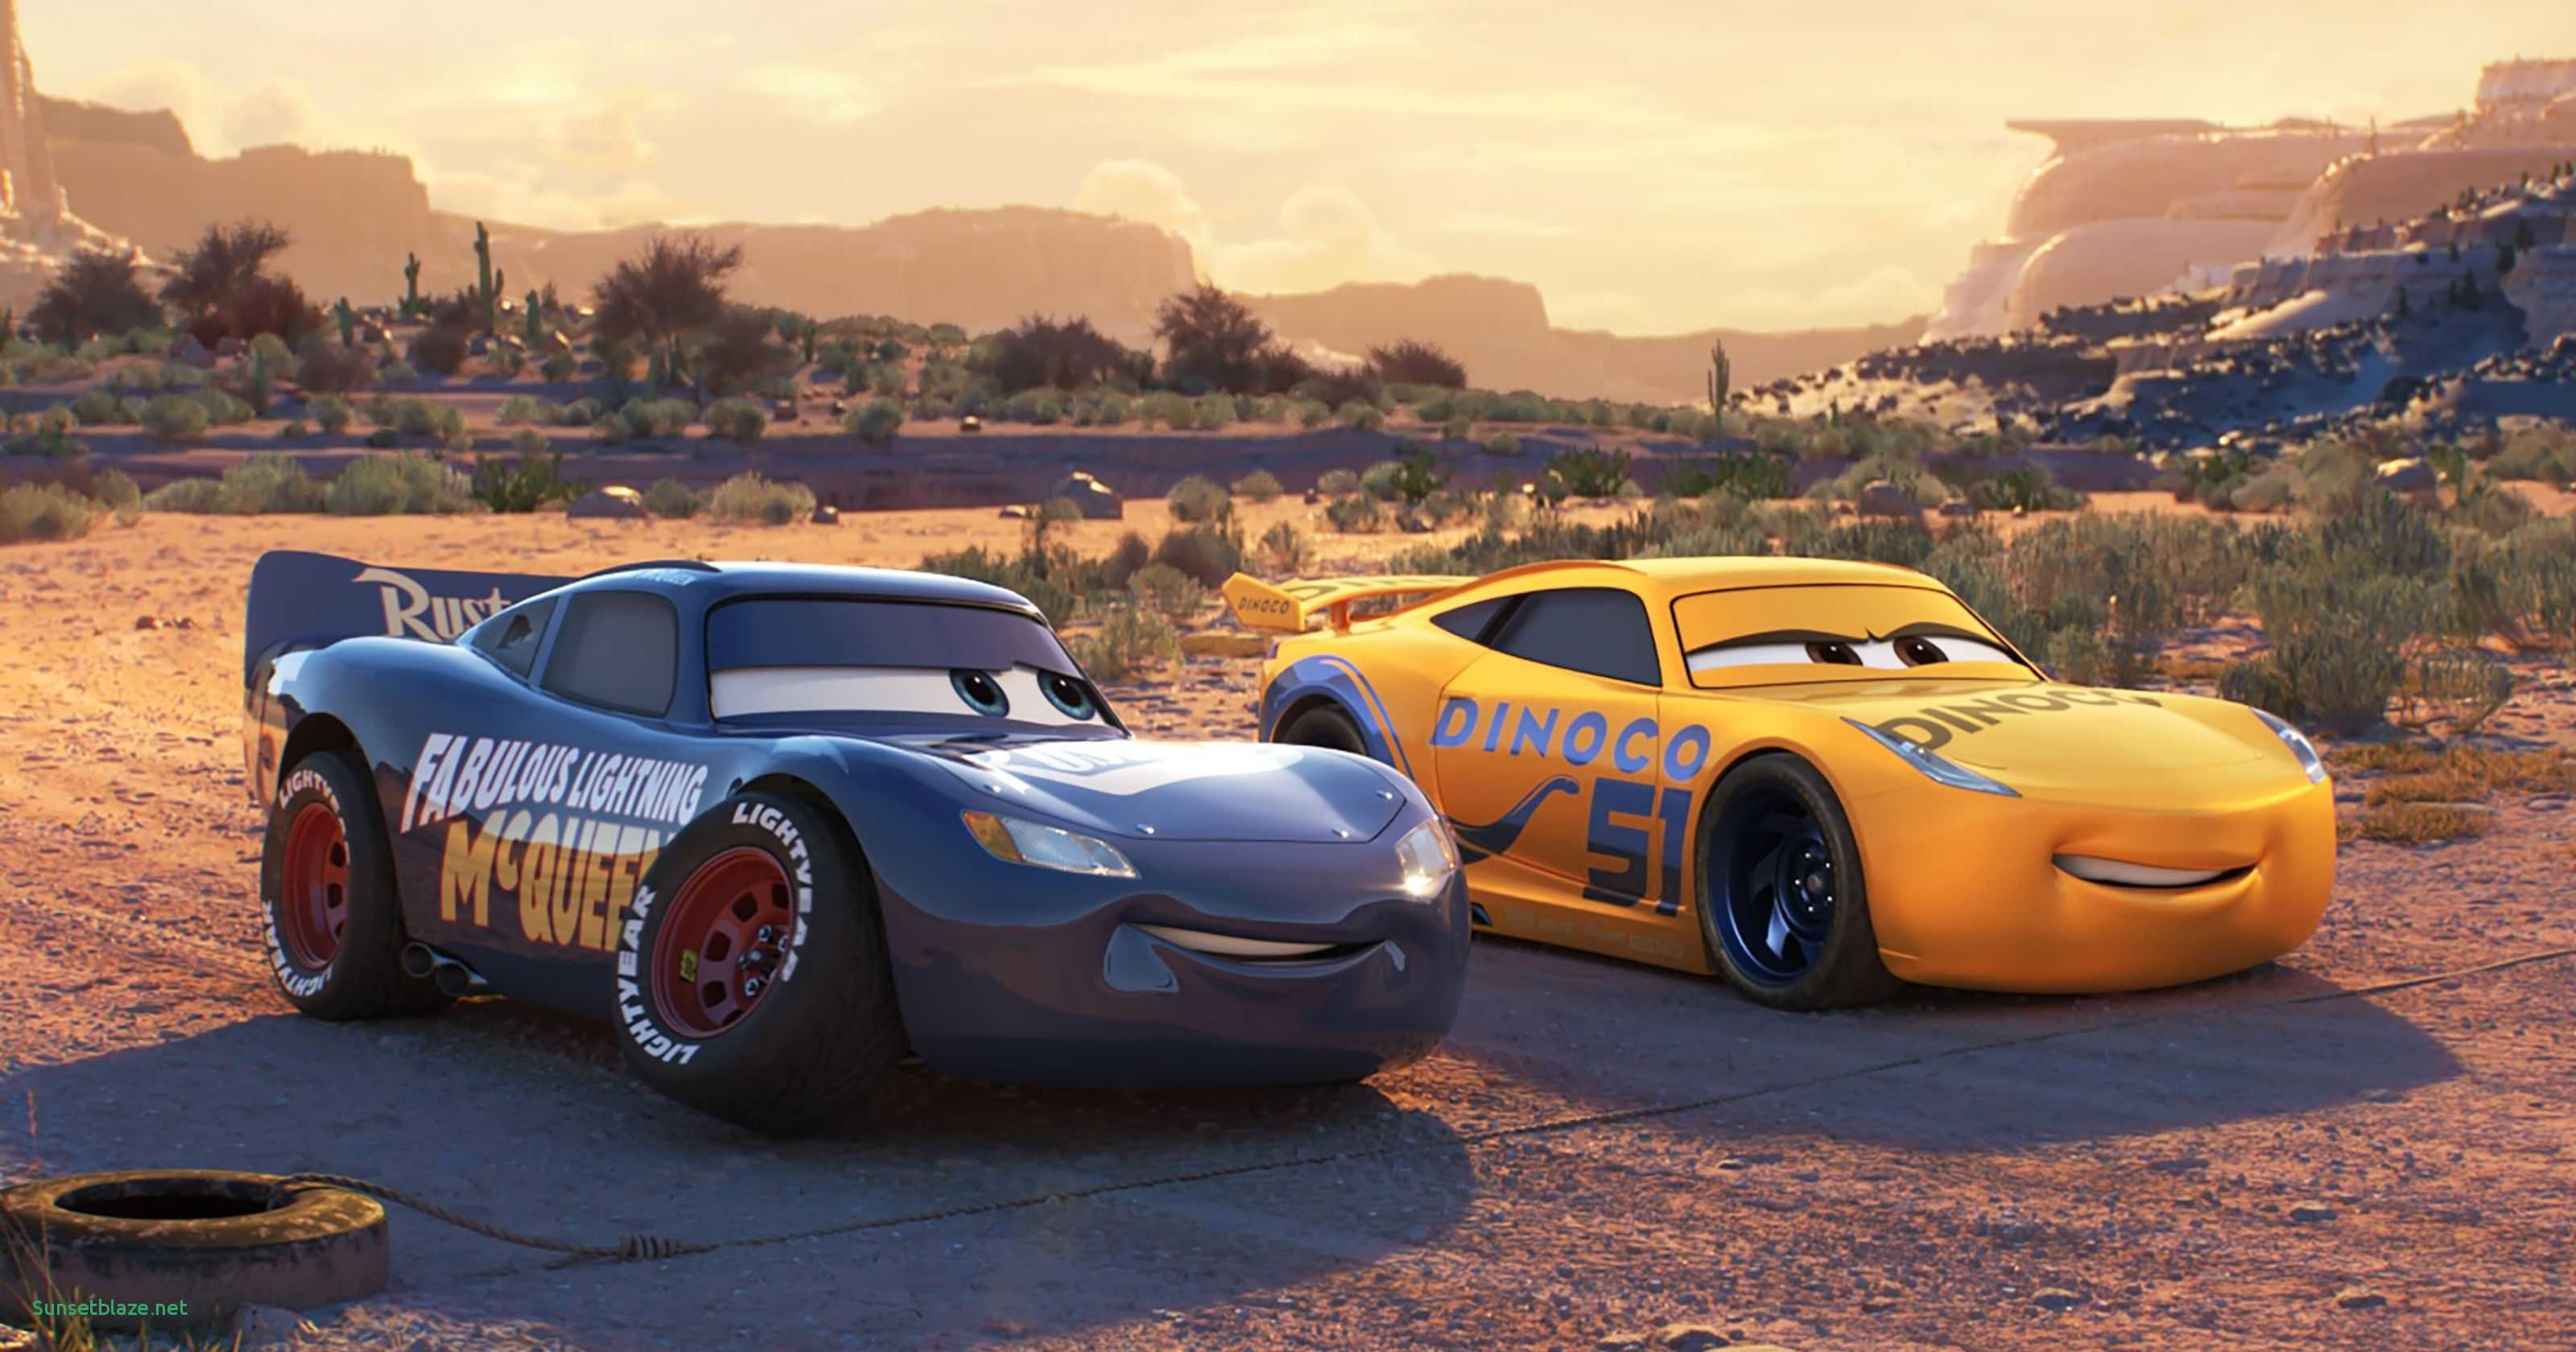 Res: 3200x1680, got hd wallpapers #155637 Cars 3 why Lightning Mcqueen ...